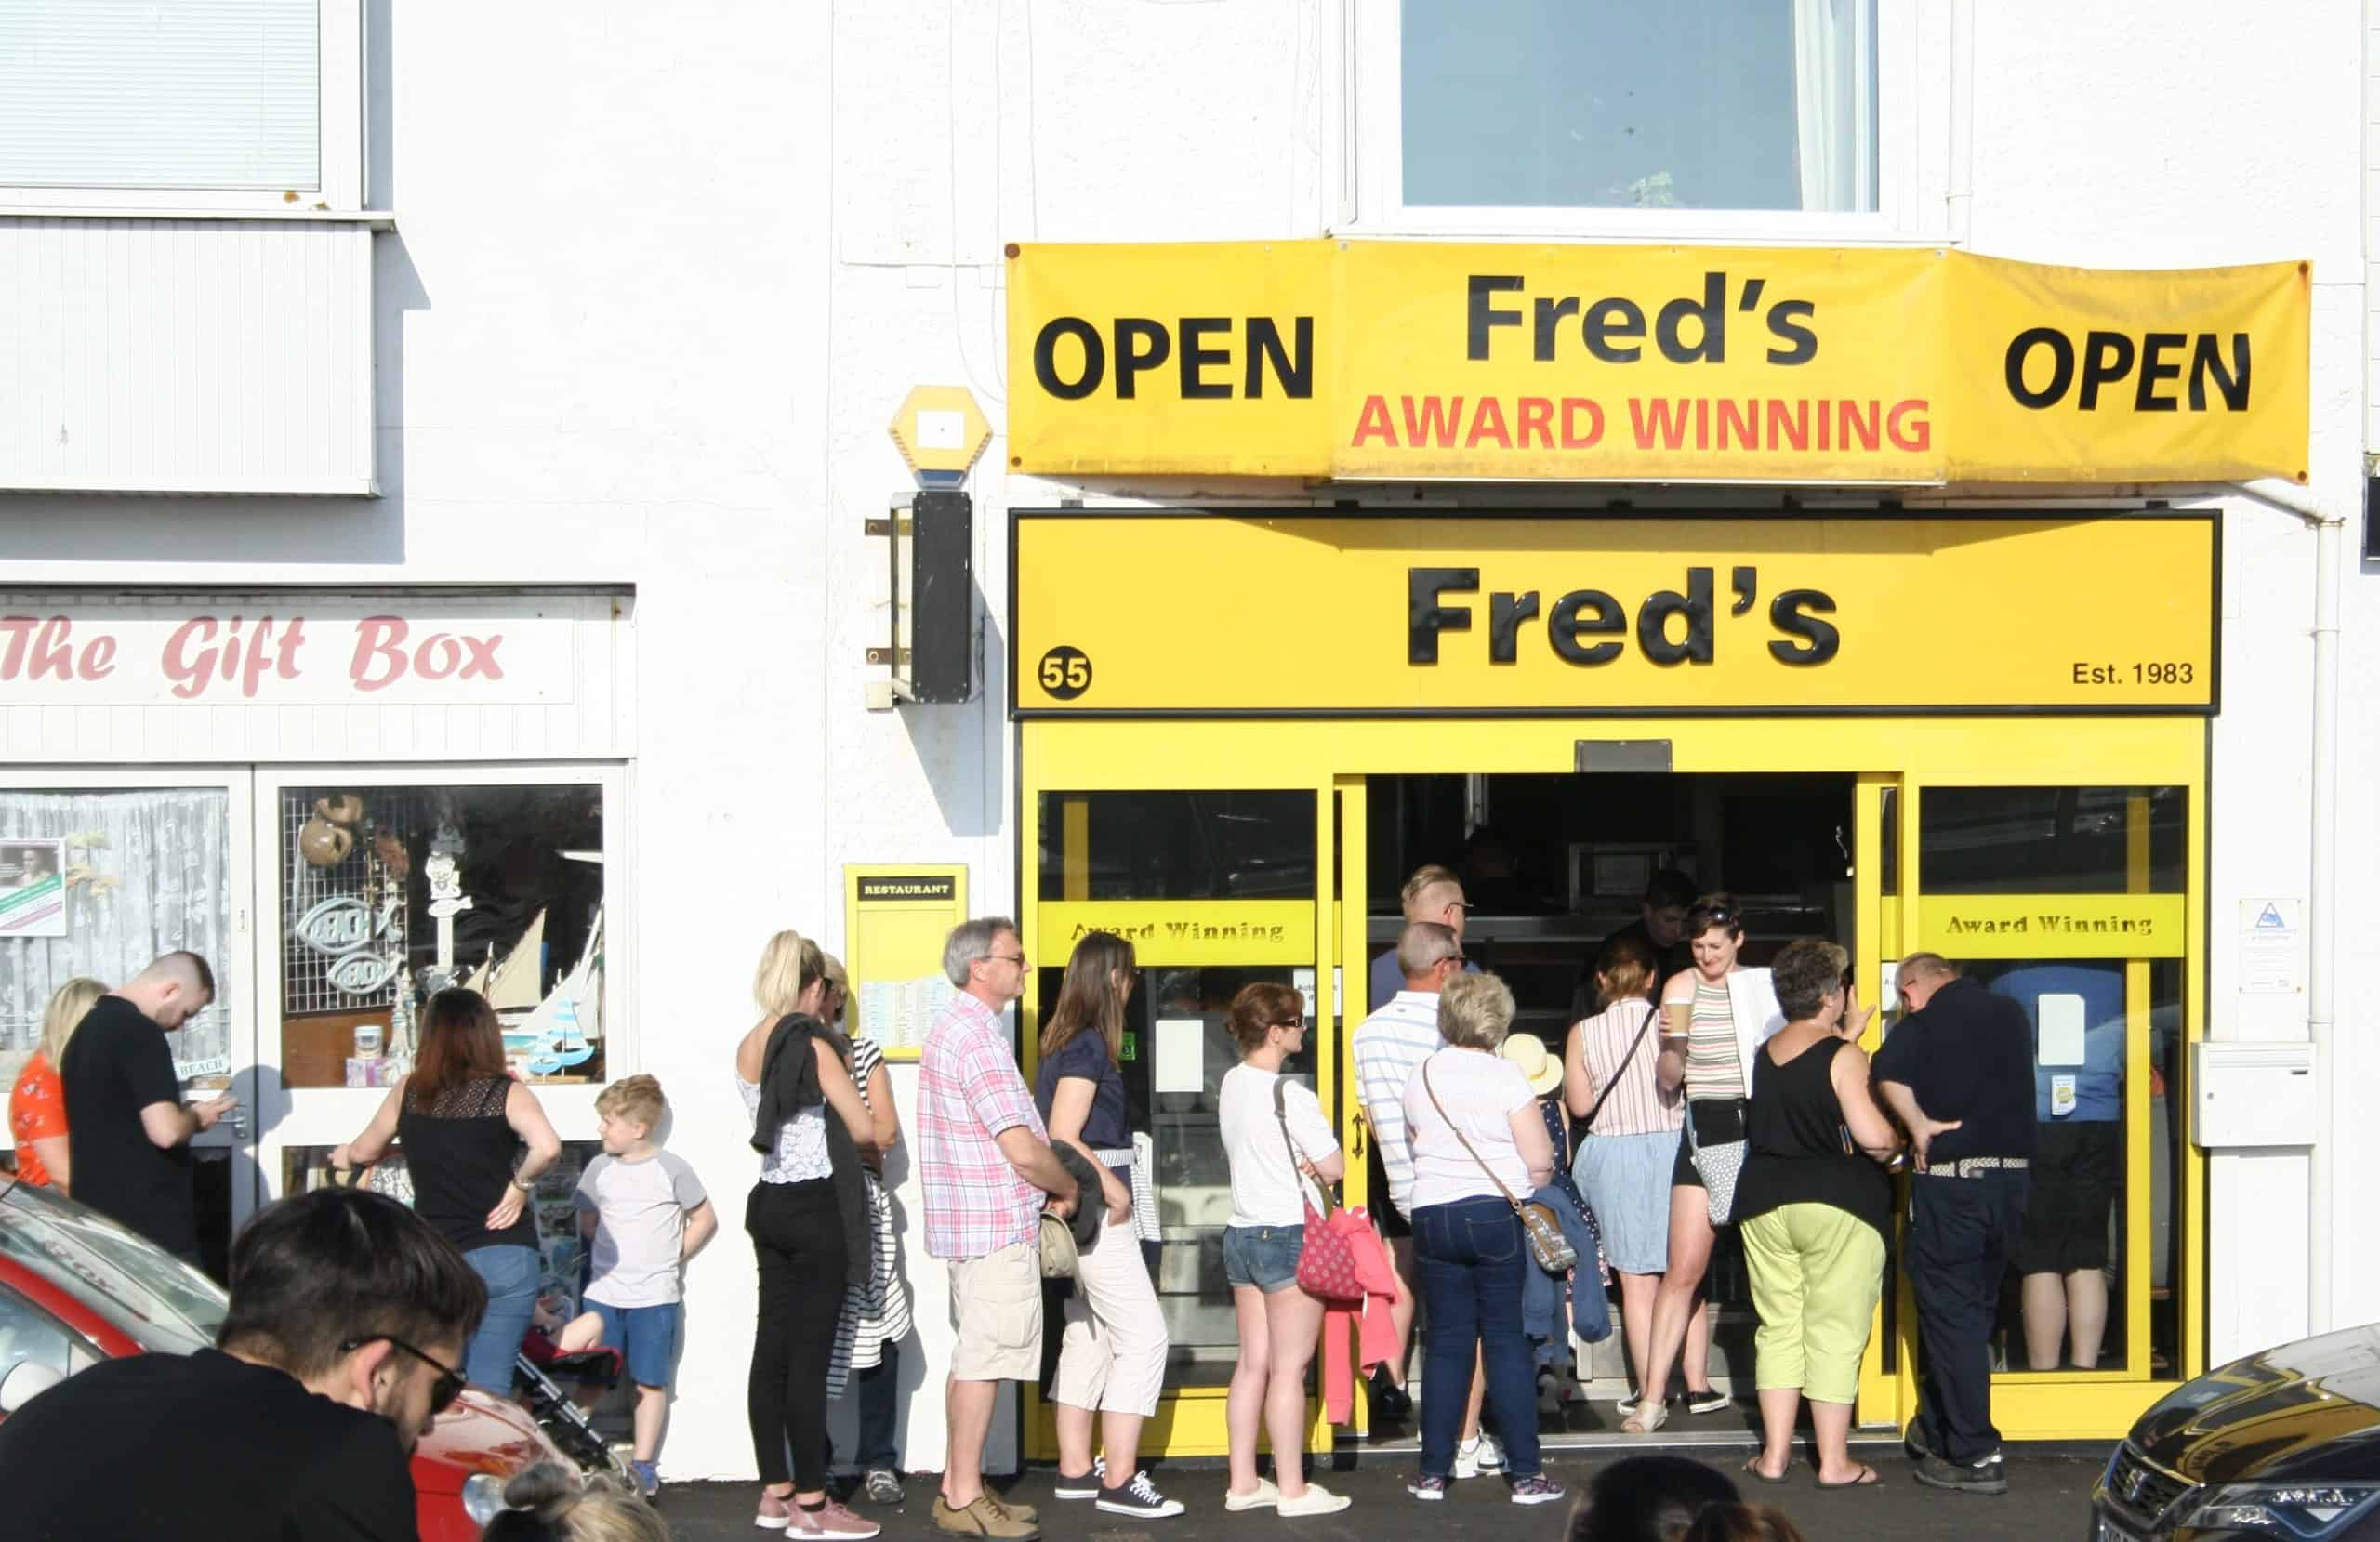 People queuing outside a store